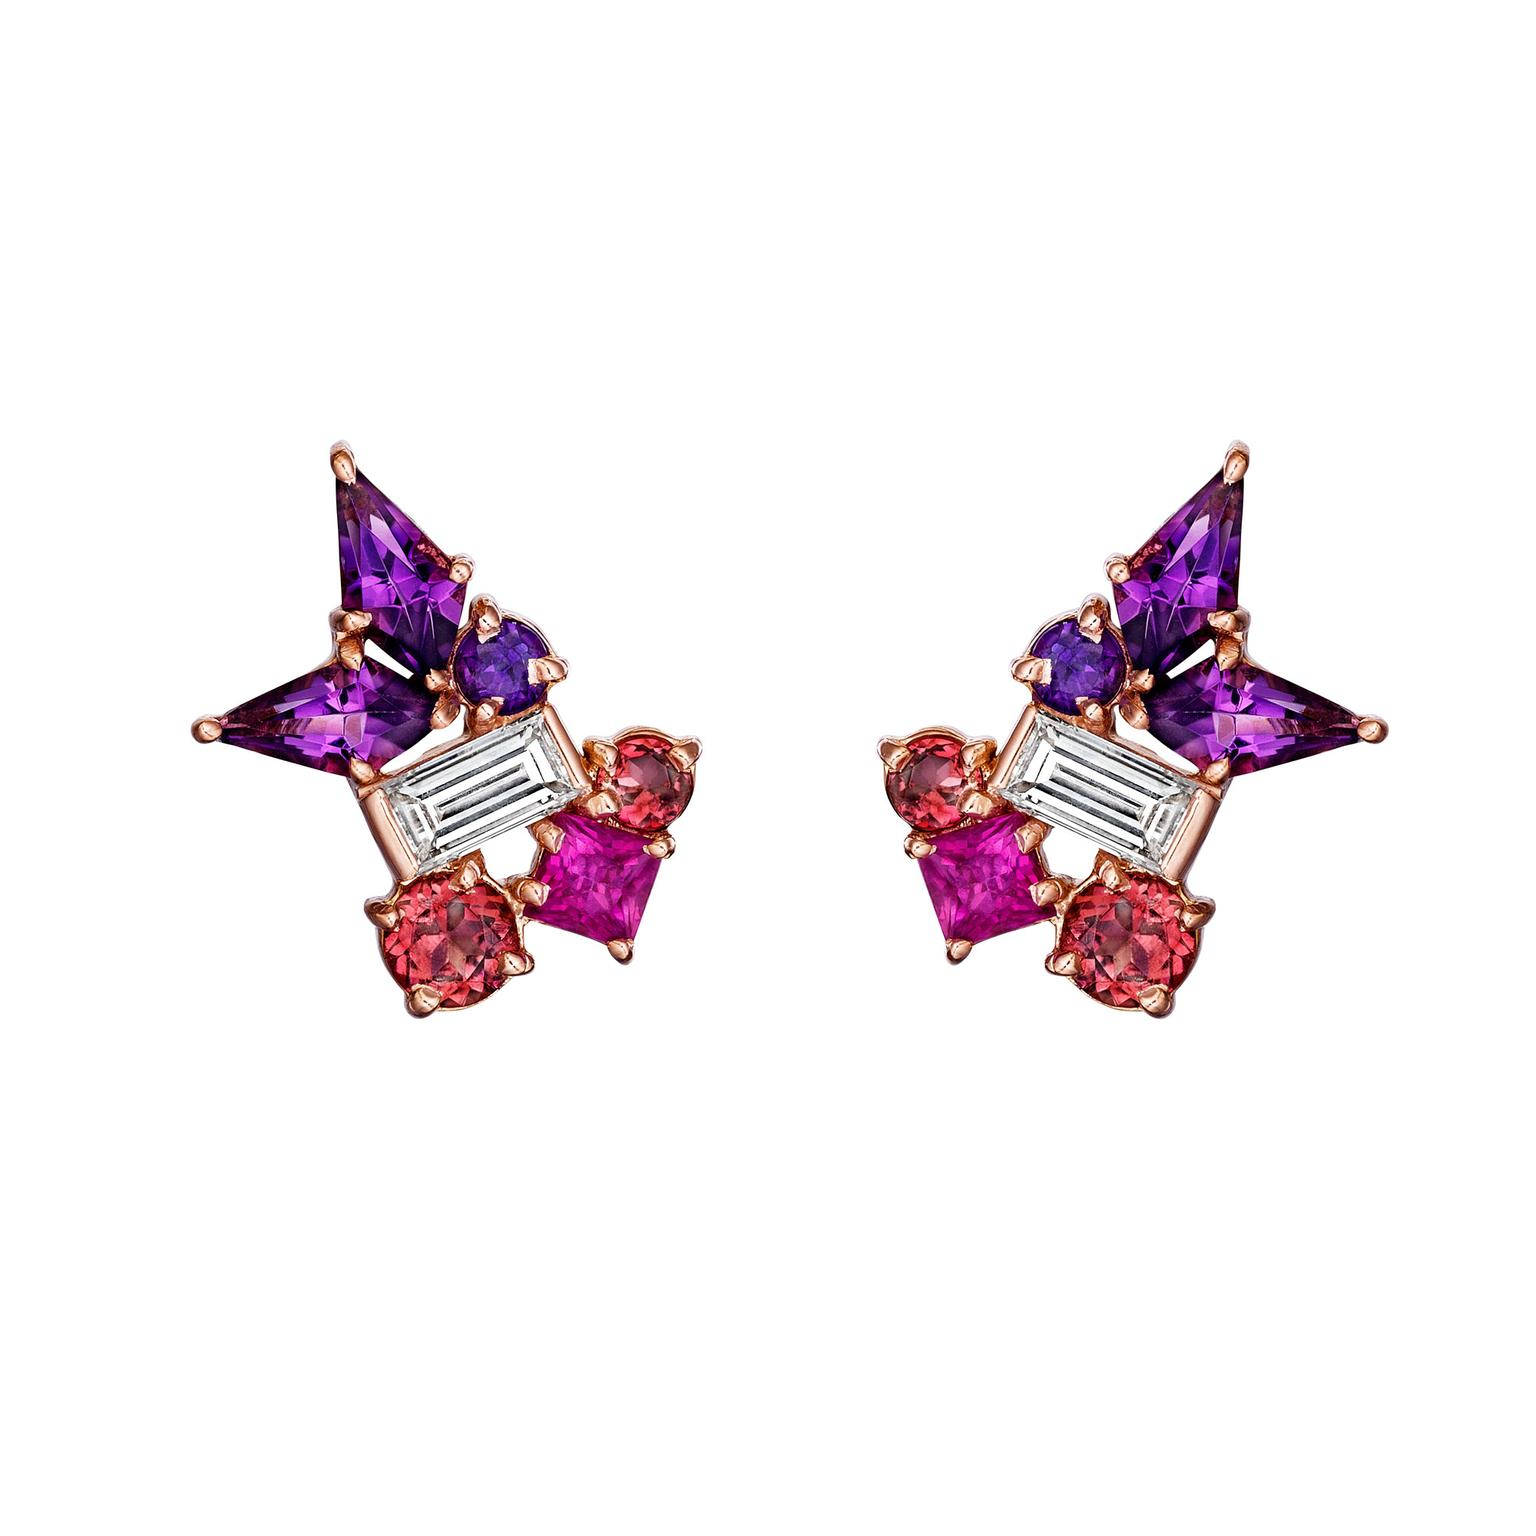 Madstone Design Melting Ice amethyst stud earrings